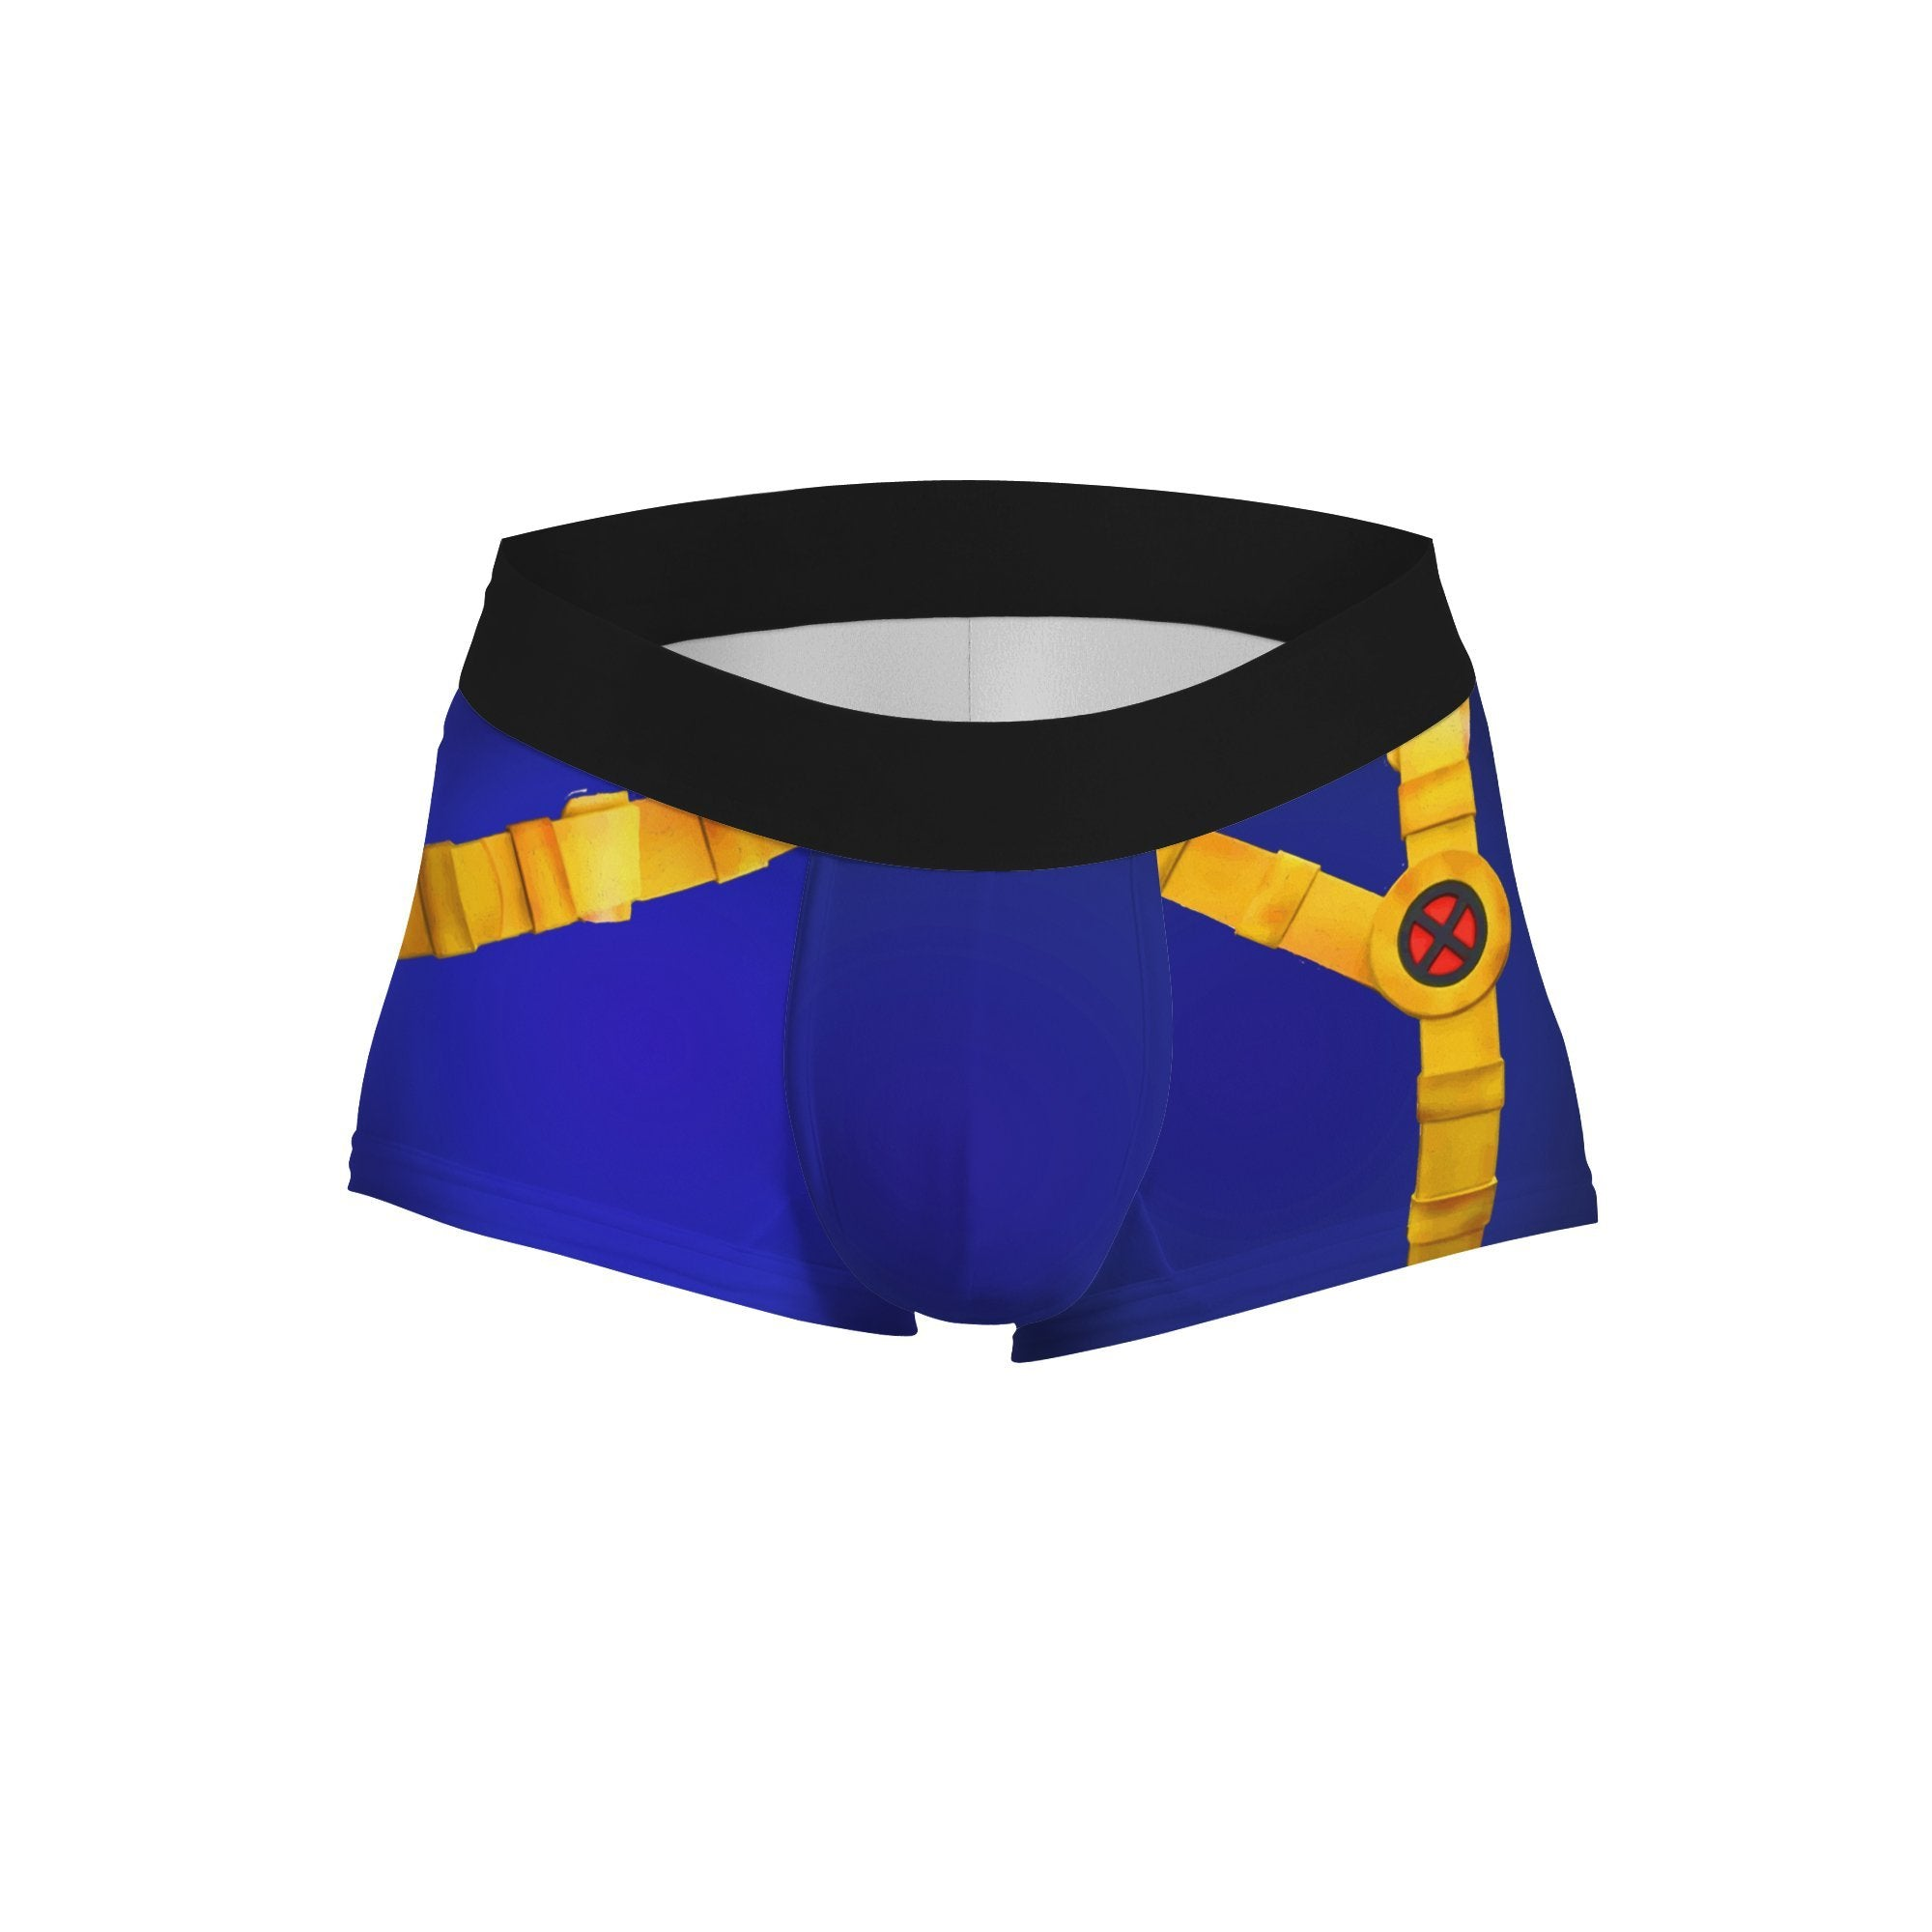 Boxer trunk Cyclops uniform marvel Scoot Summers logo xmen - Geek Skin - Geek Underwear -